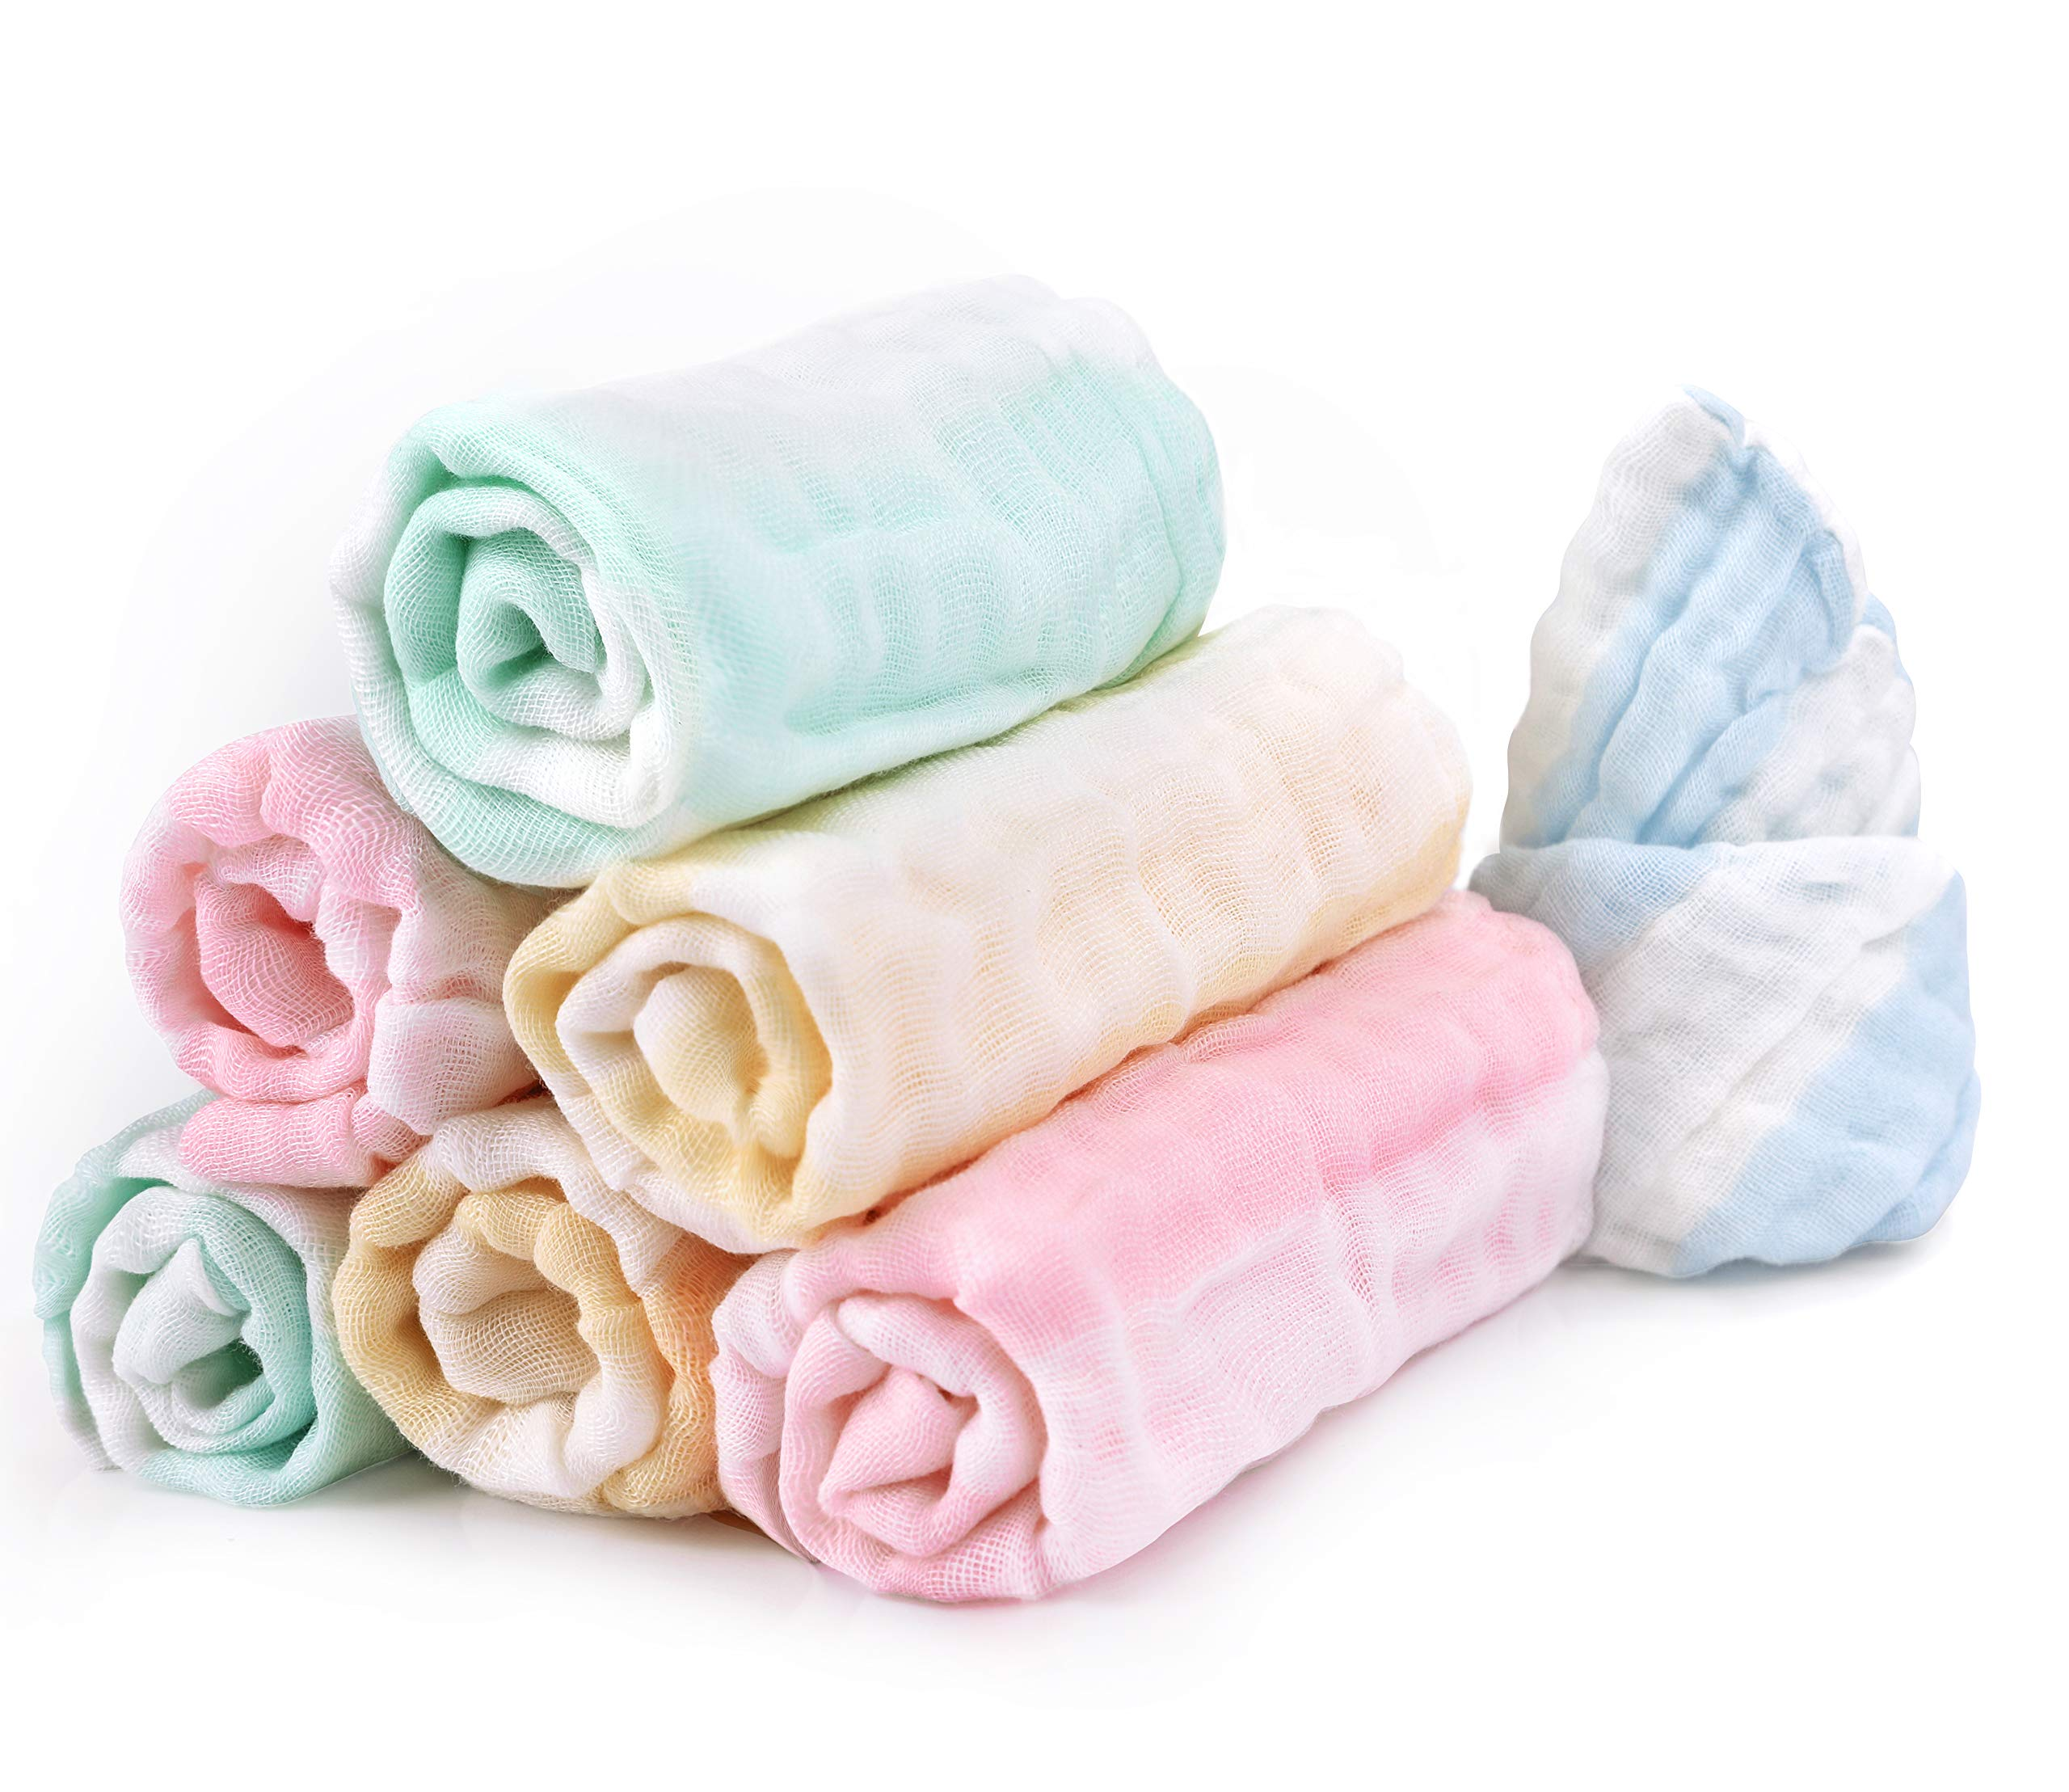 Bamboo Cotton Baby Muslin Washcloth LifeTree Baby Washcloths Soft 6 Pack Face Towels Baby Shower Gift 10.6 x 10.6inch Bibs for Newborn with Sensitive Skin Pink